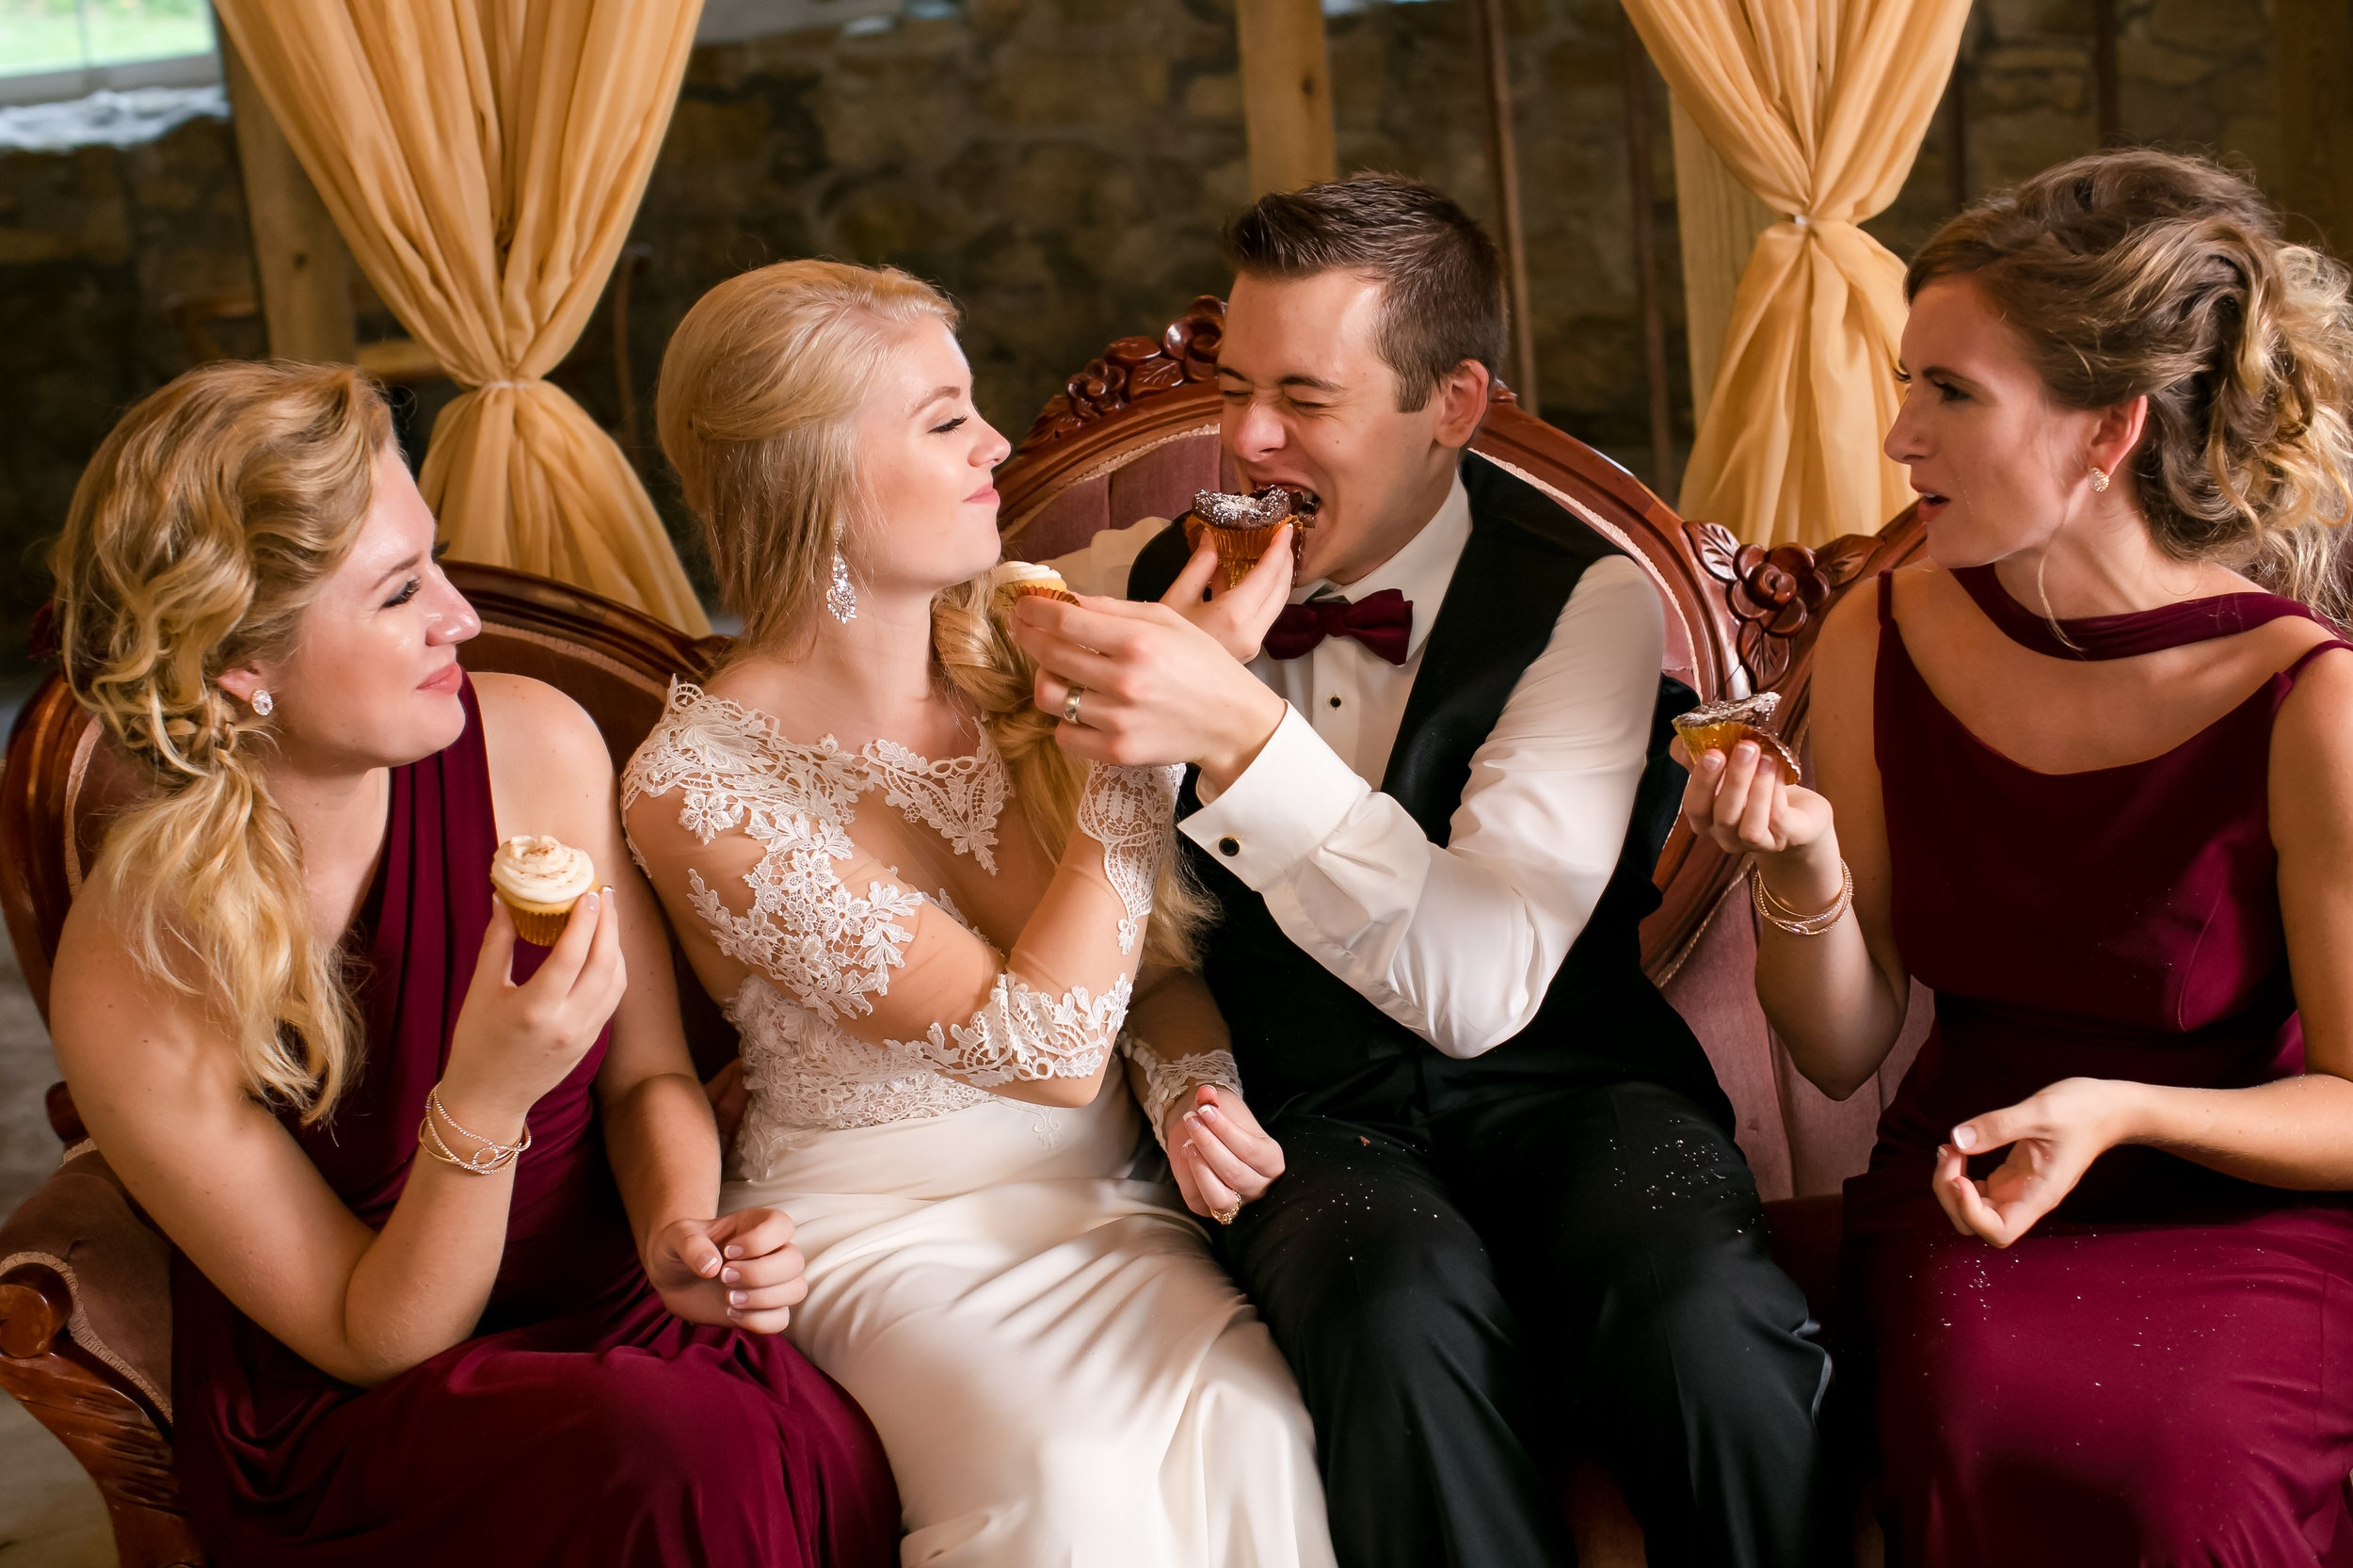 Enjoying wedding desserts with burgundy dresses and taupe draping backdrop